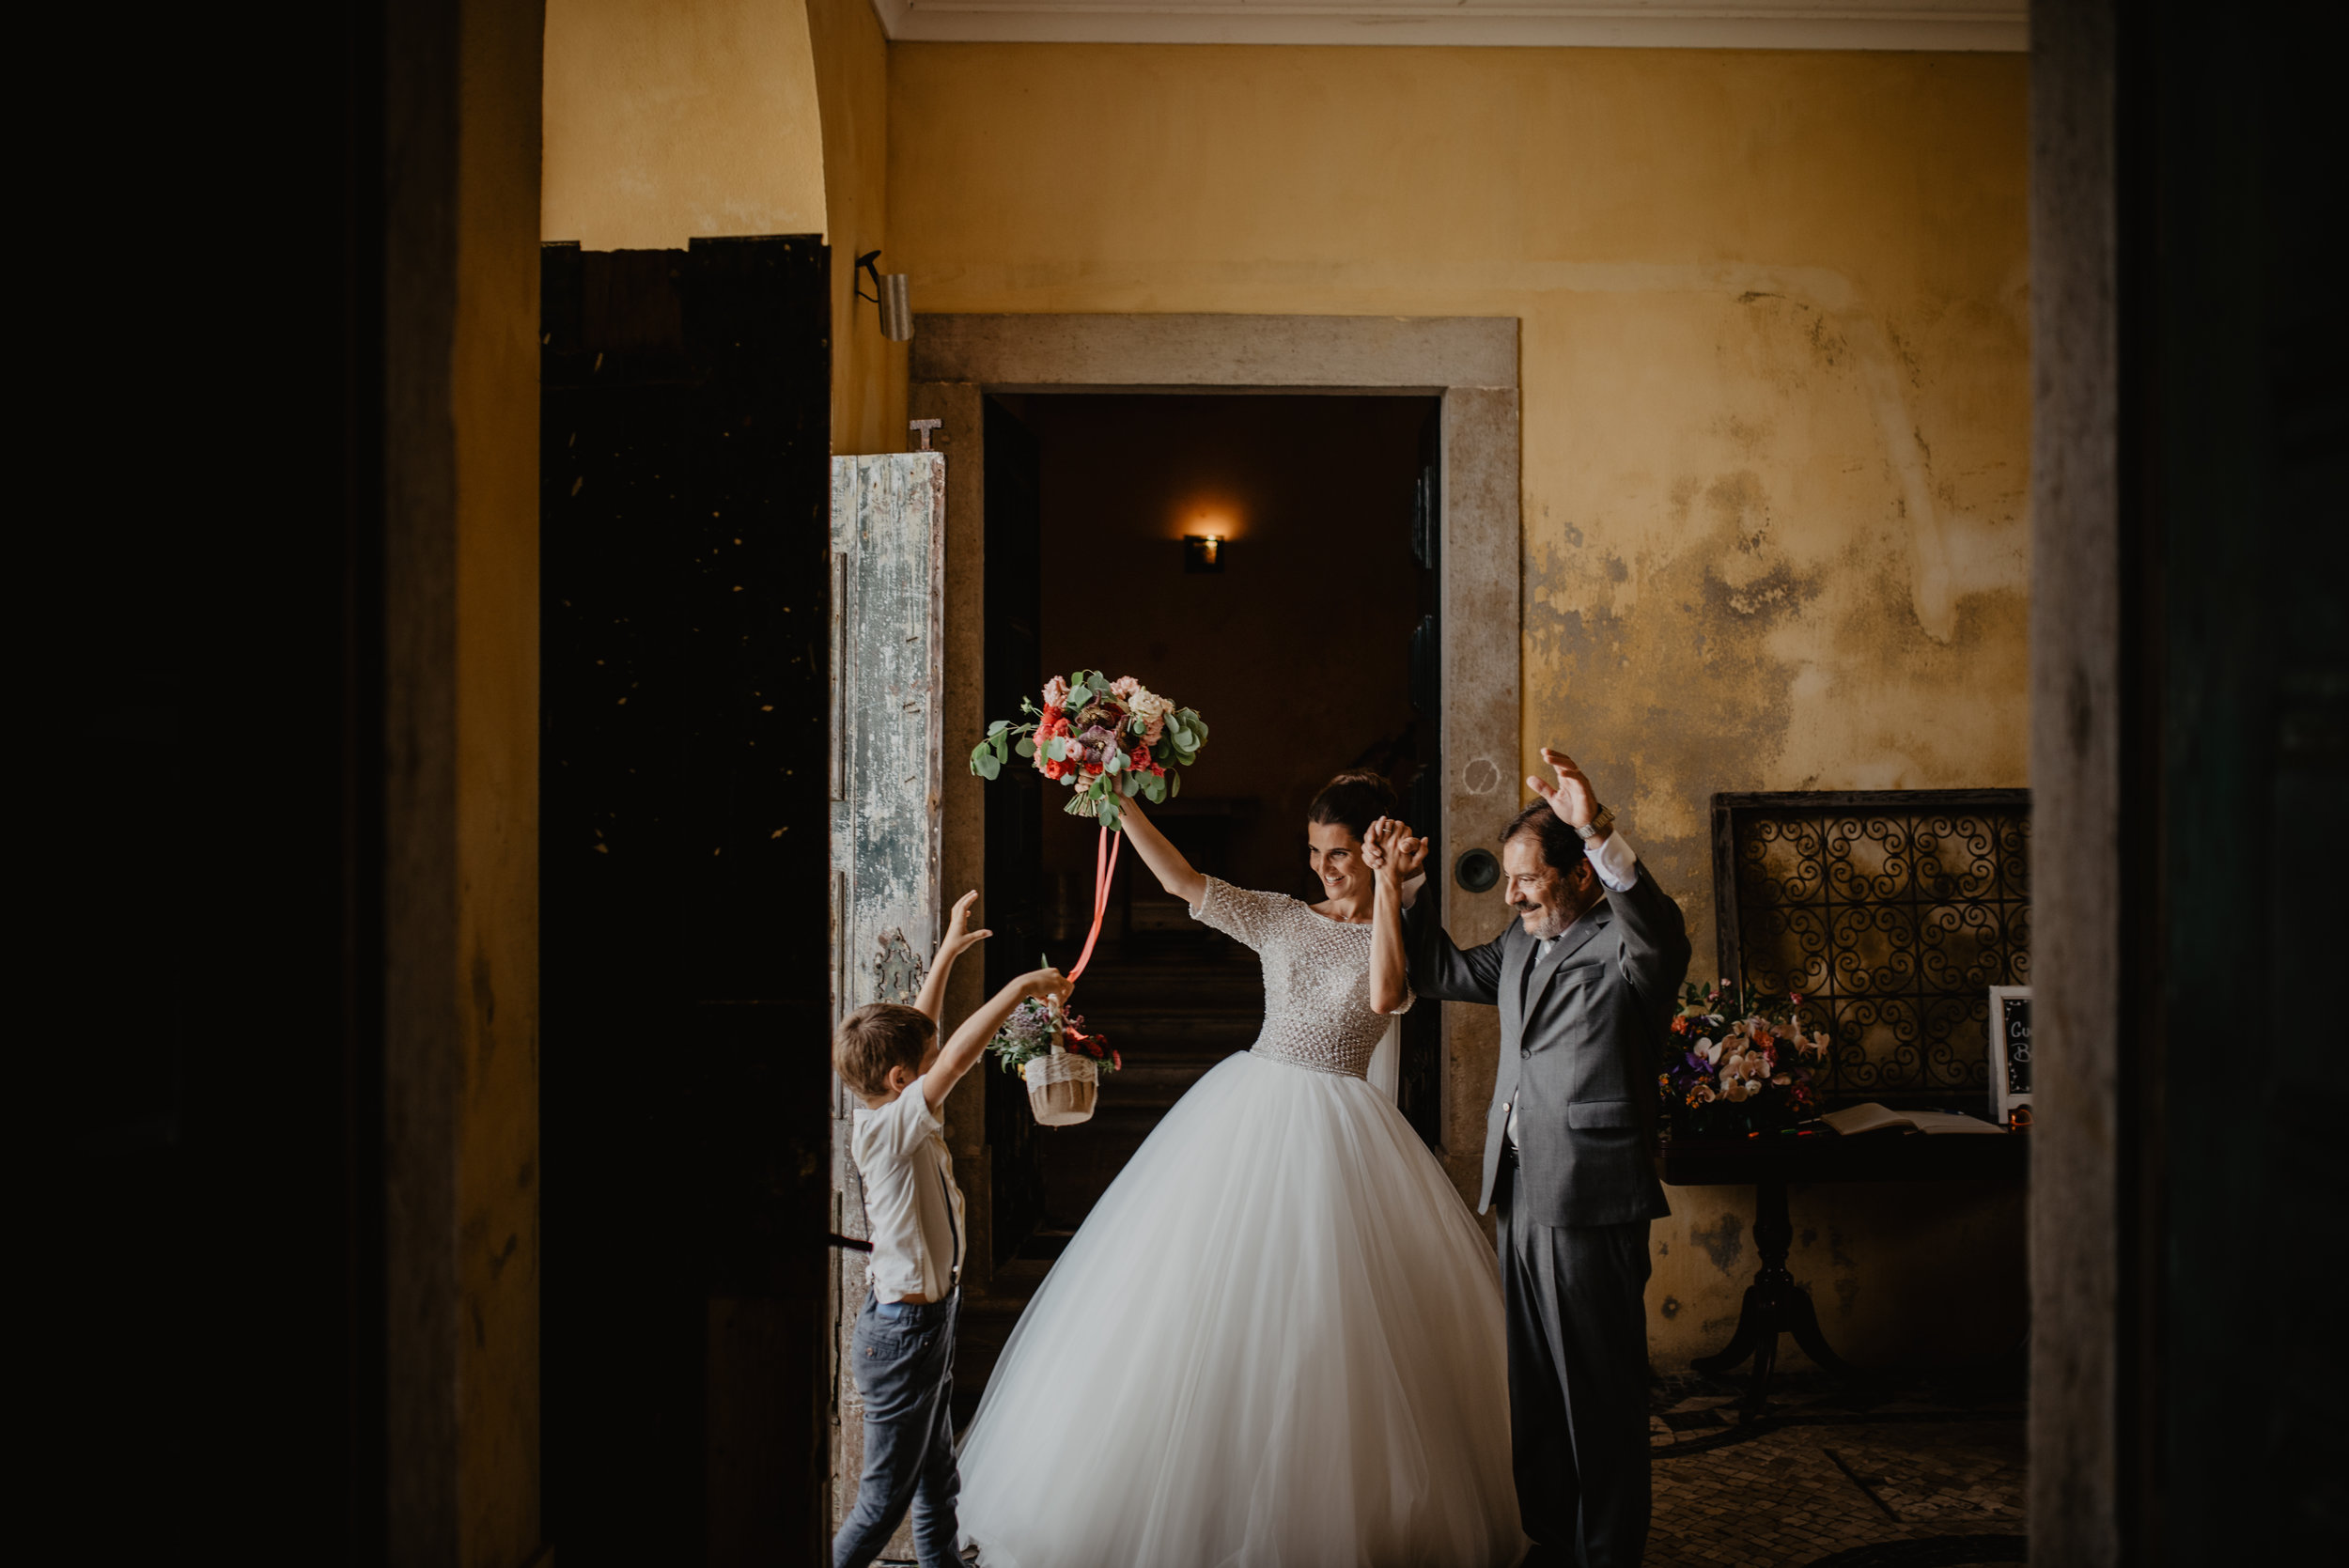 Lapela-photography-wedding-sintra-portugal-51.jpg